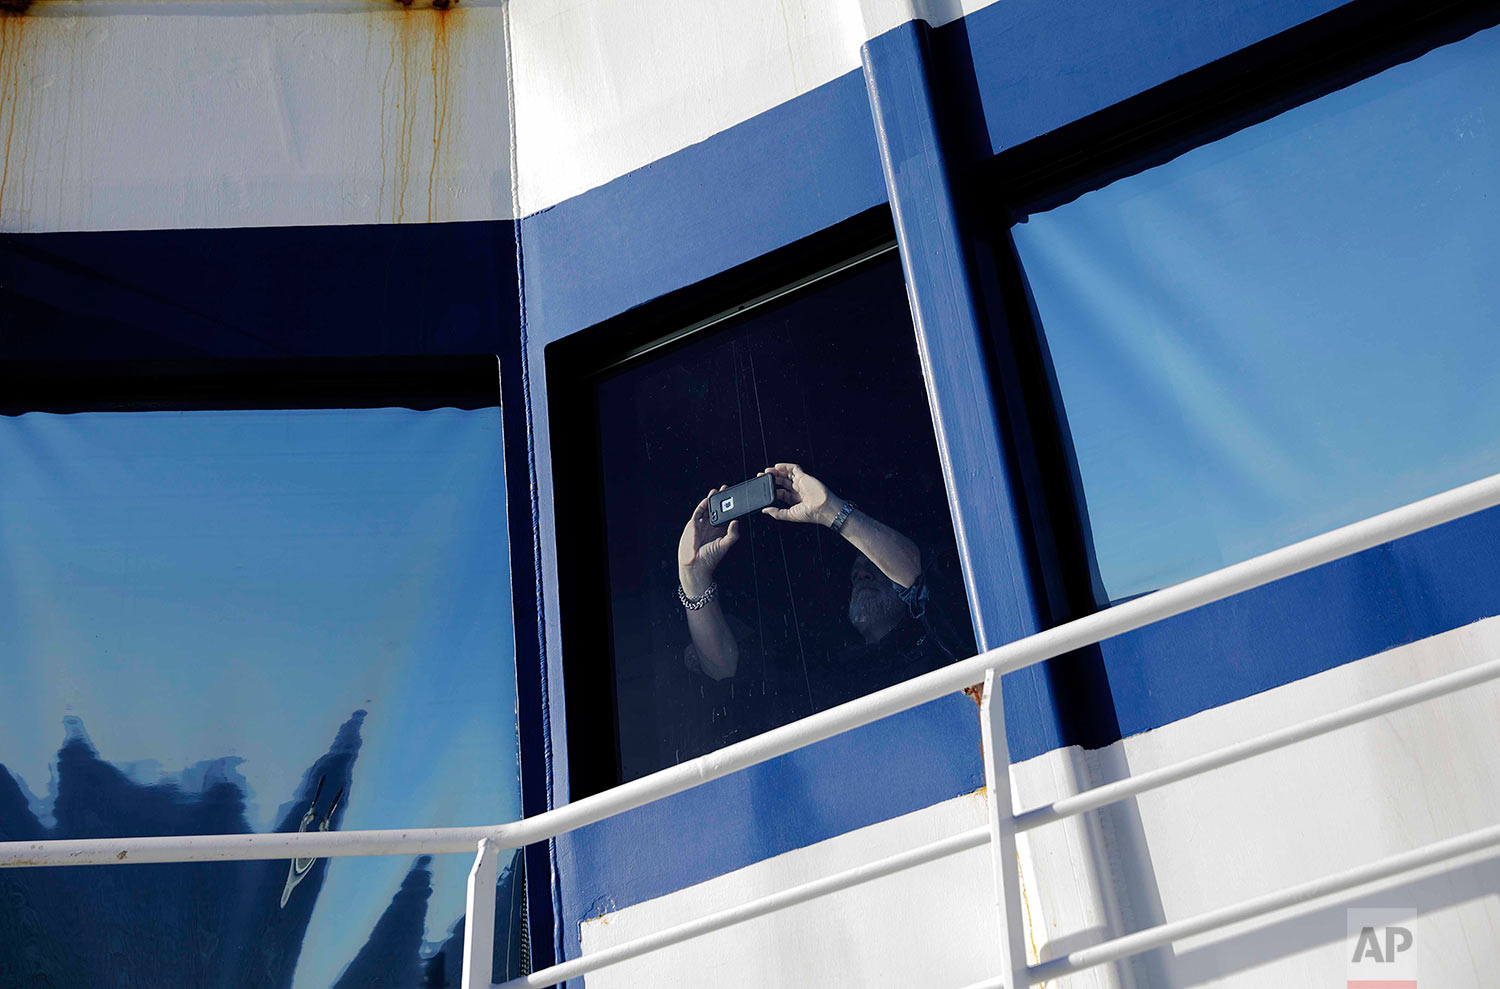 """Canadian ice navigator, David """"Duke"""" Snider takes a photo from the bridge as the Finnish icebreaker MSV Nordica arrives into Nuuk, Greenland, after traversing the Northwest Passage through the Canadian Arctic Archipelago, Saturday, July 29, 2017. After 24 days at sea and a journey spanning more than 10,000 kilometers (6,214 miles), the MSV Nordica has set a new record for the earliest transit of the fabled Northwest Passage. The once-forbidding route through the Arctic, linking the Pacific and the Atlantic oceans, has been opening up sooner and for a longer period each summer due to climate change. (AP Photo/David Goldman)"""